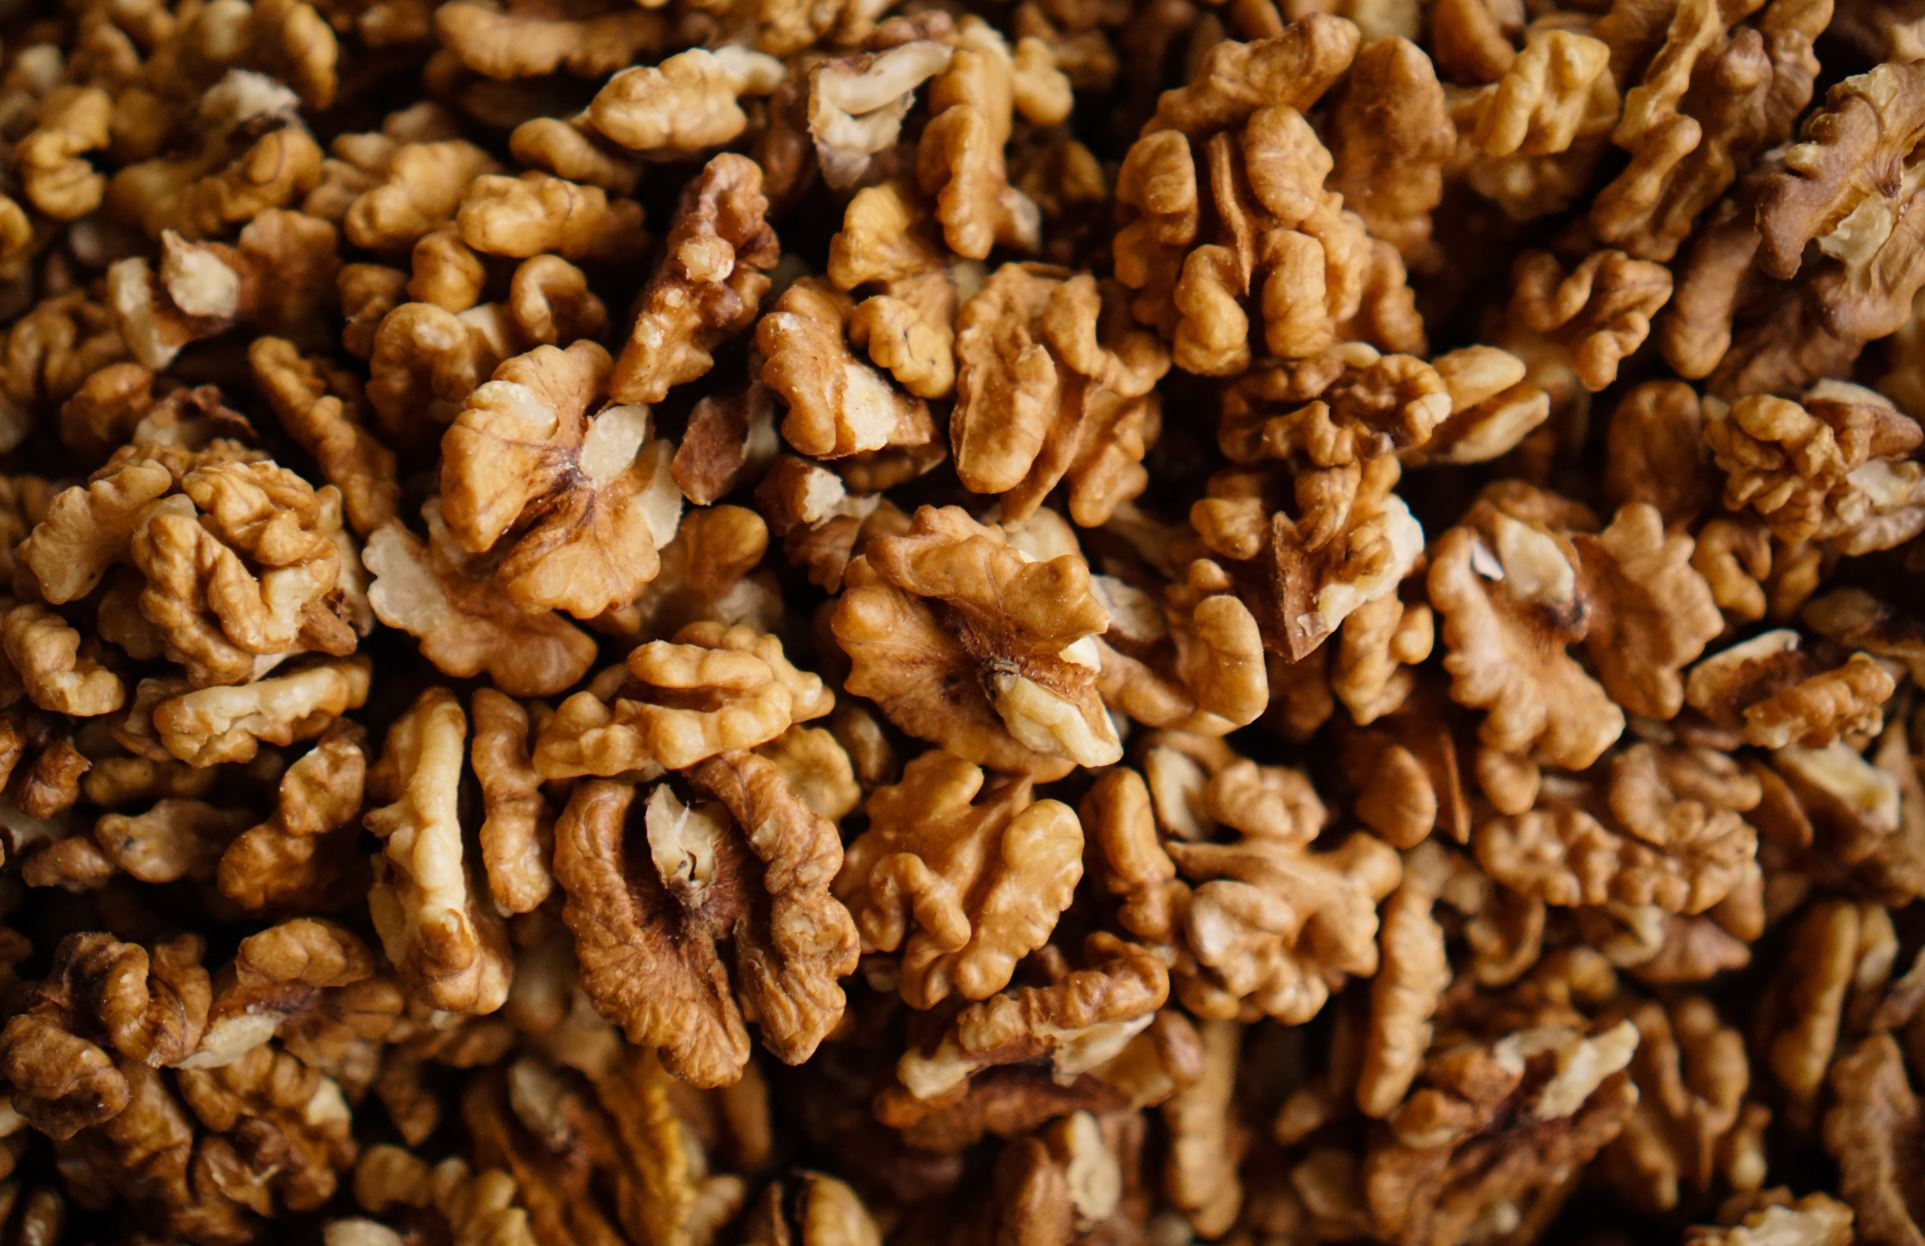 Nuts are a healthier option for a snack than many processed alternatives. - Image Credit:  Tom Hermans via Unsplash